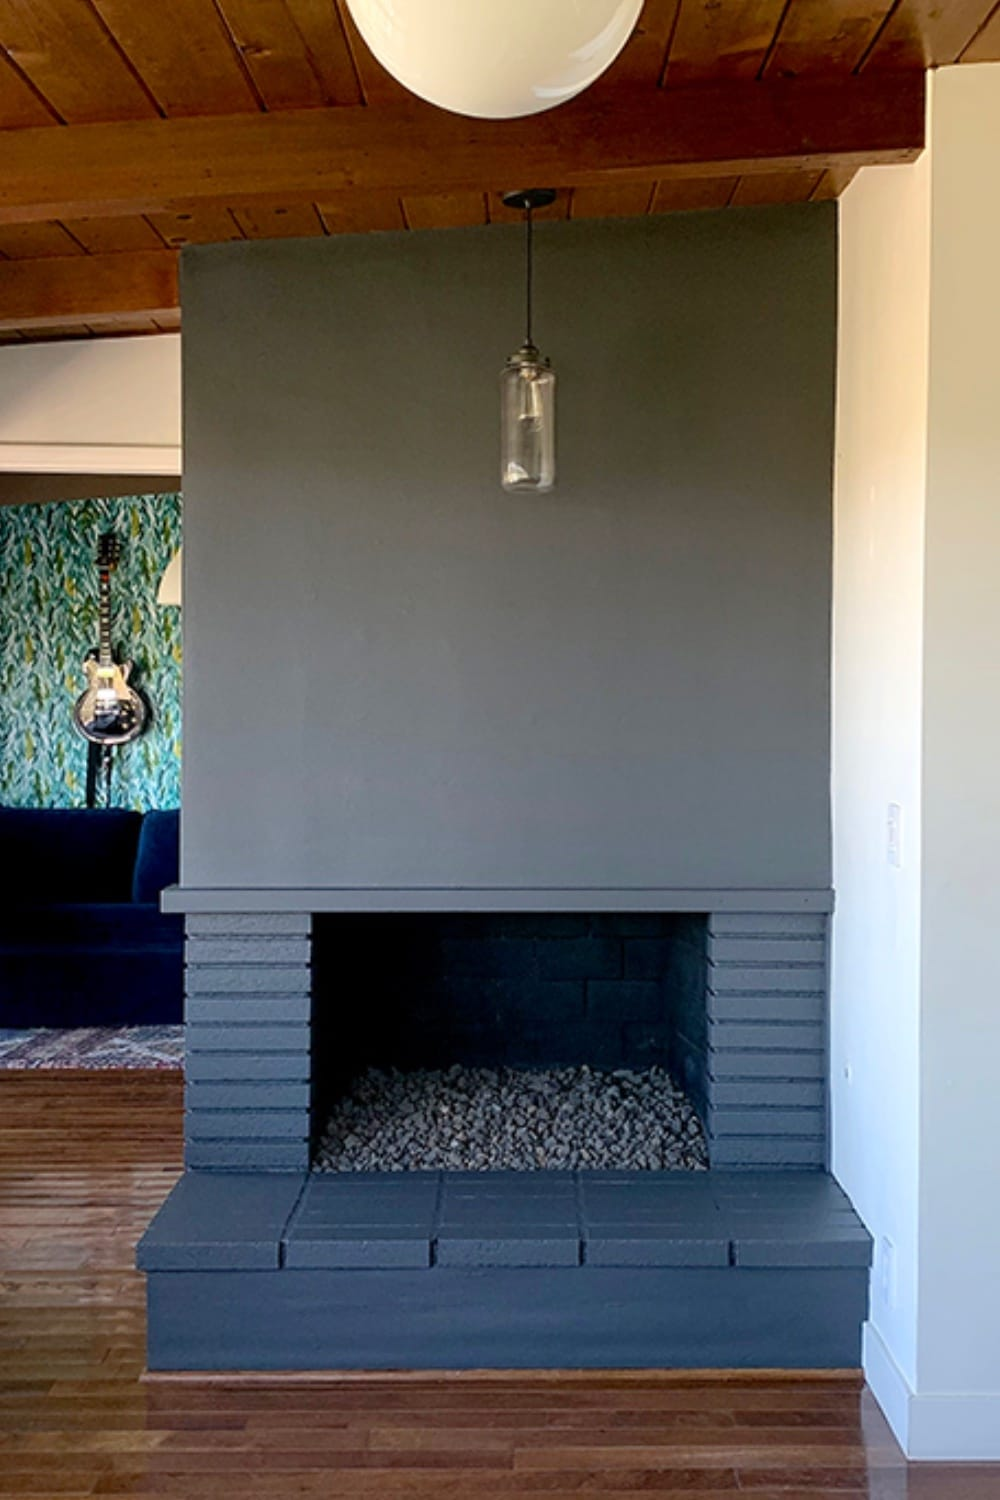 How to Paint a Fireplace: From Vintage to Elegant